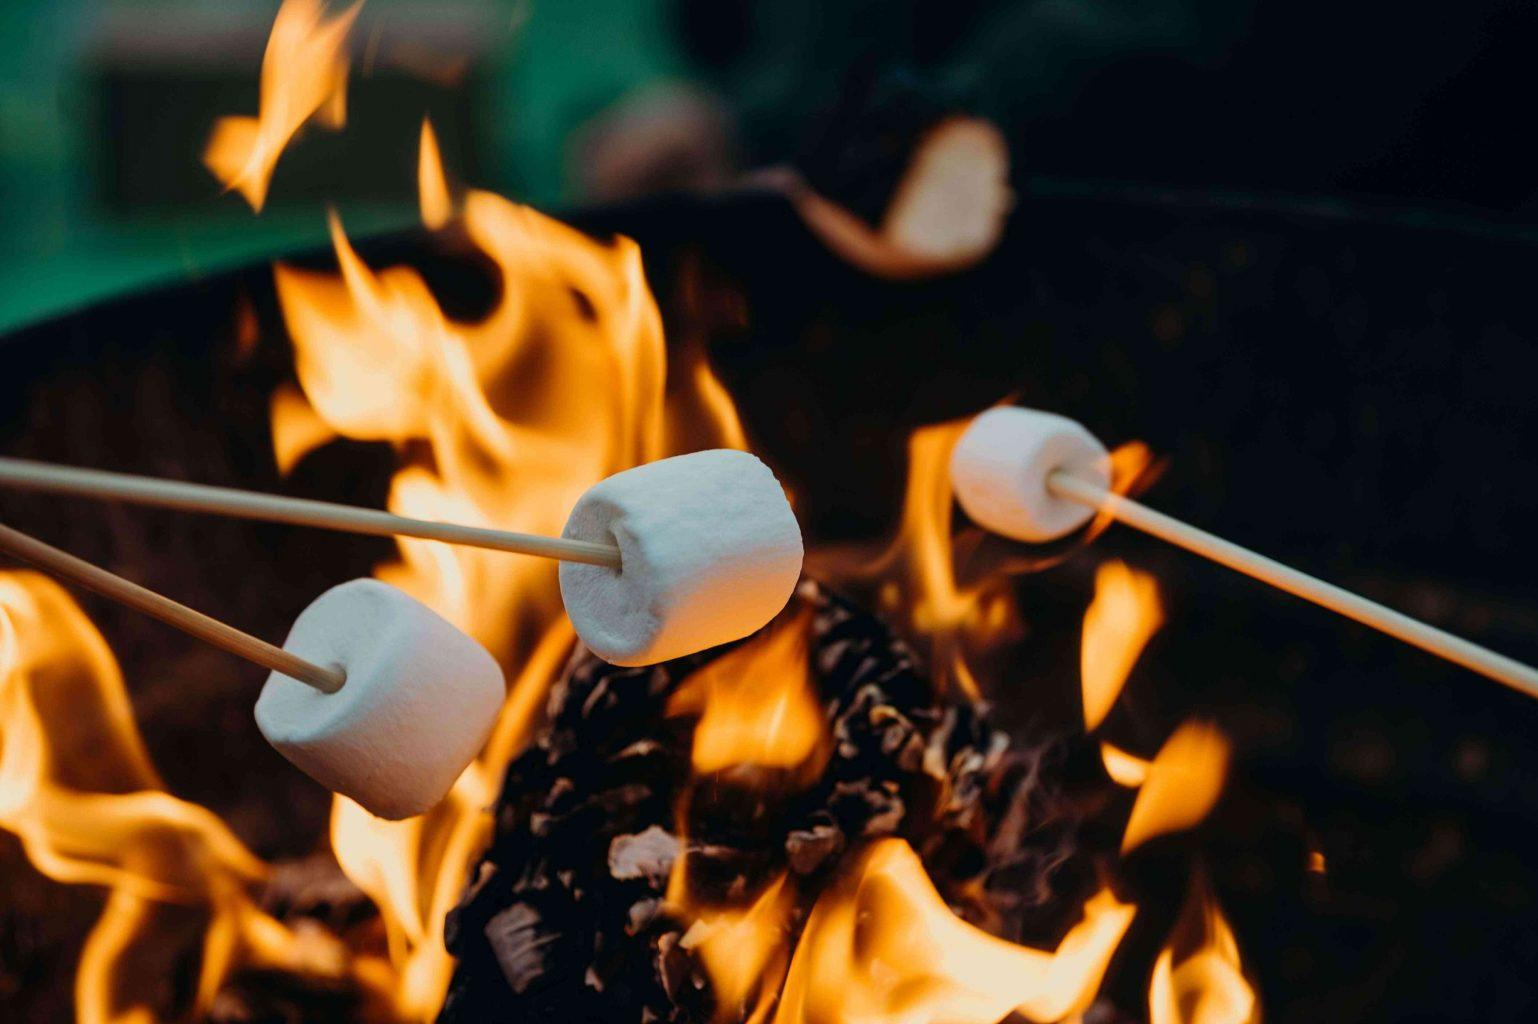 eating-marshmallows-at-a-campfire